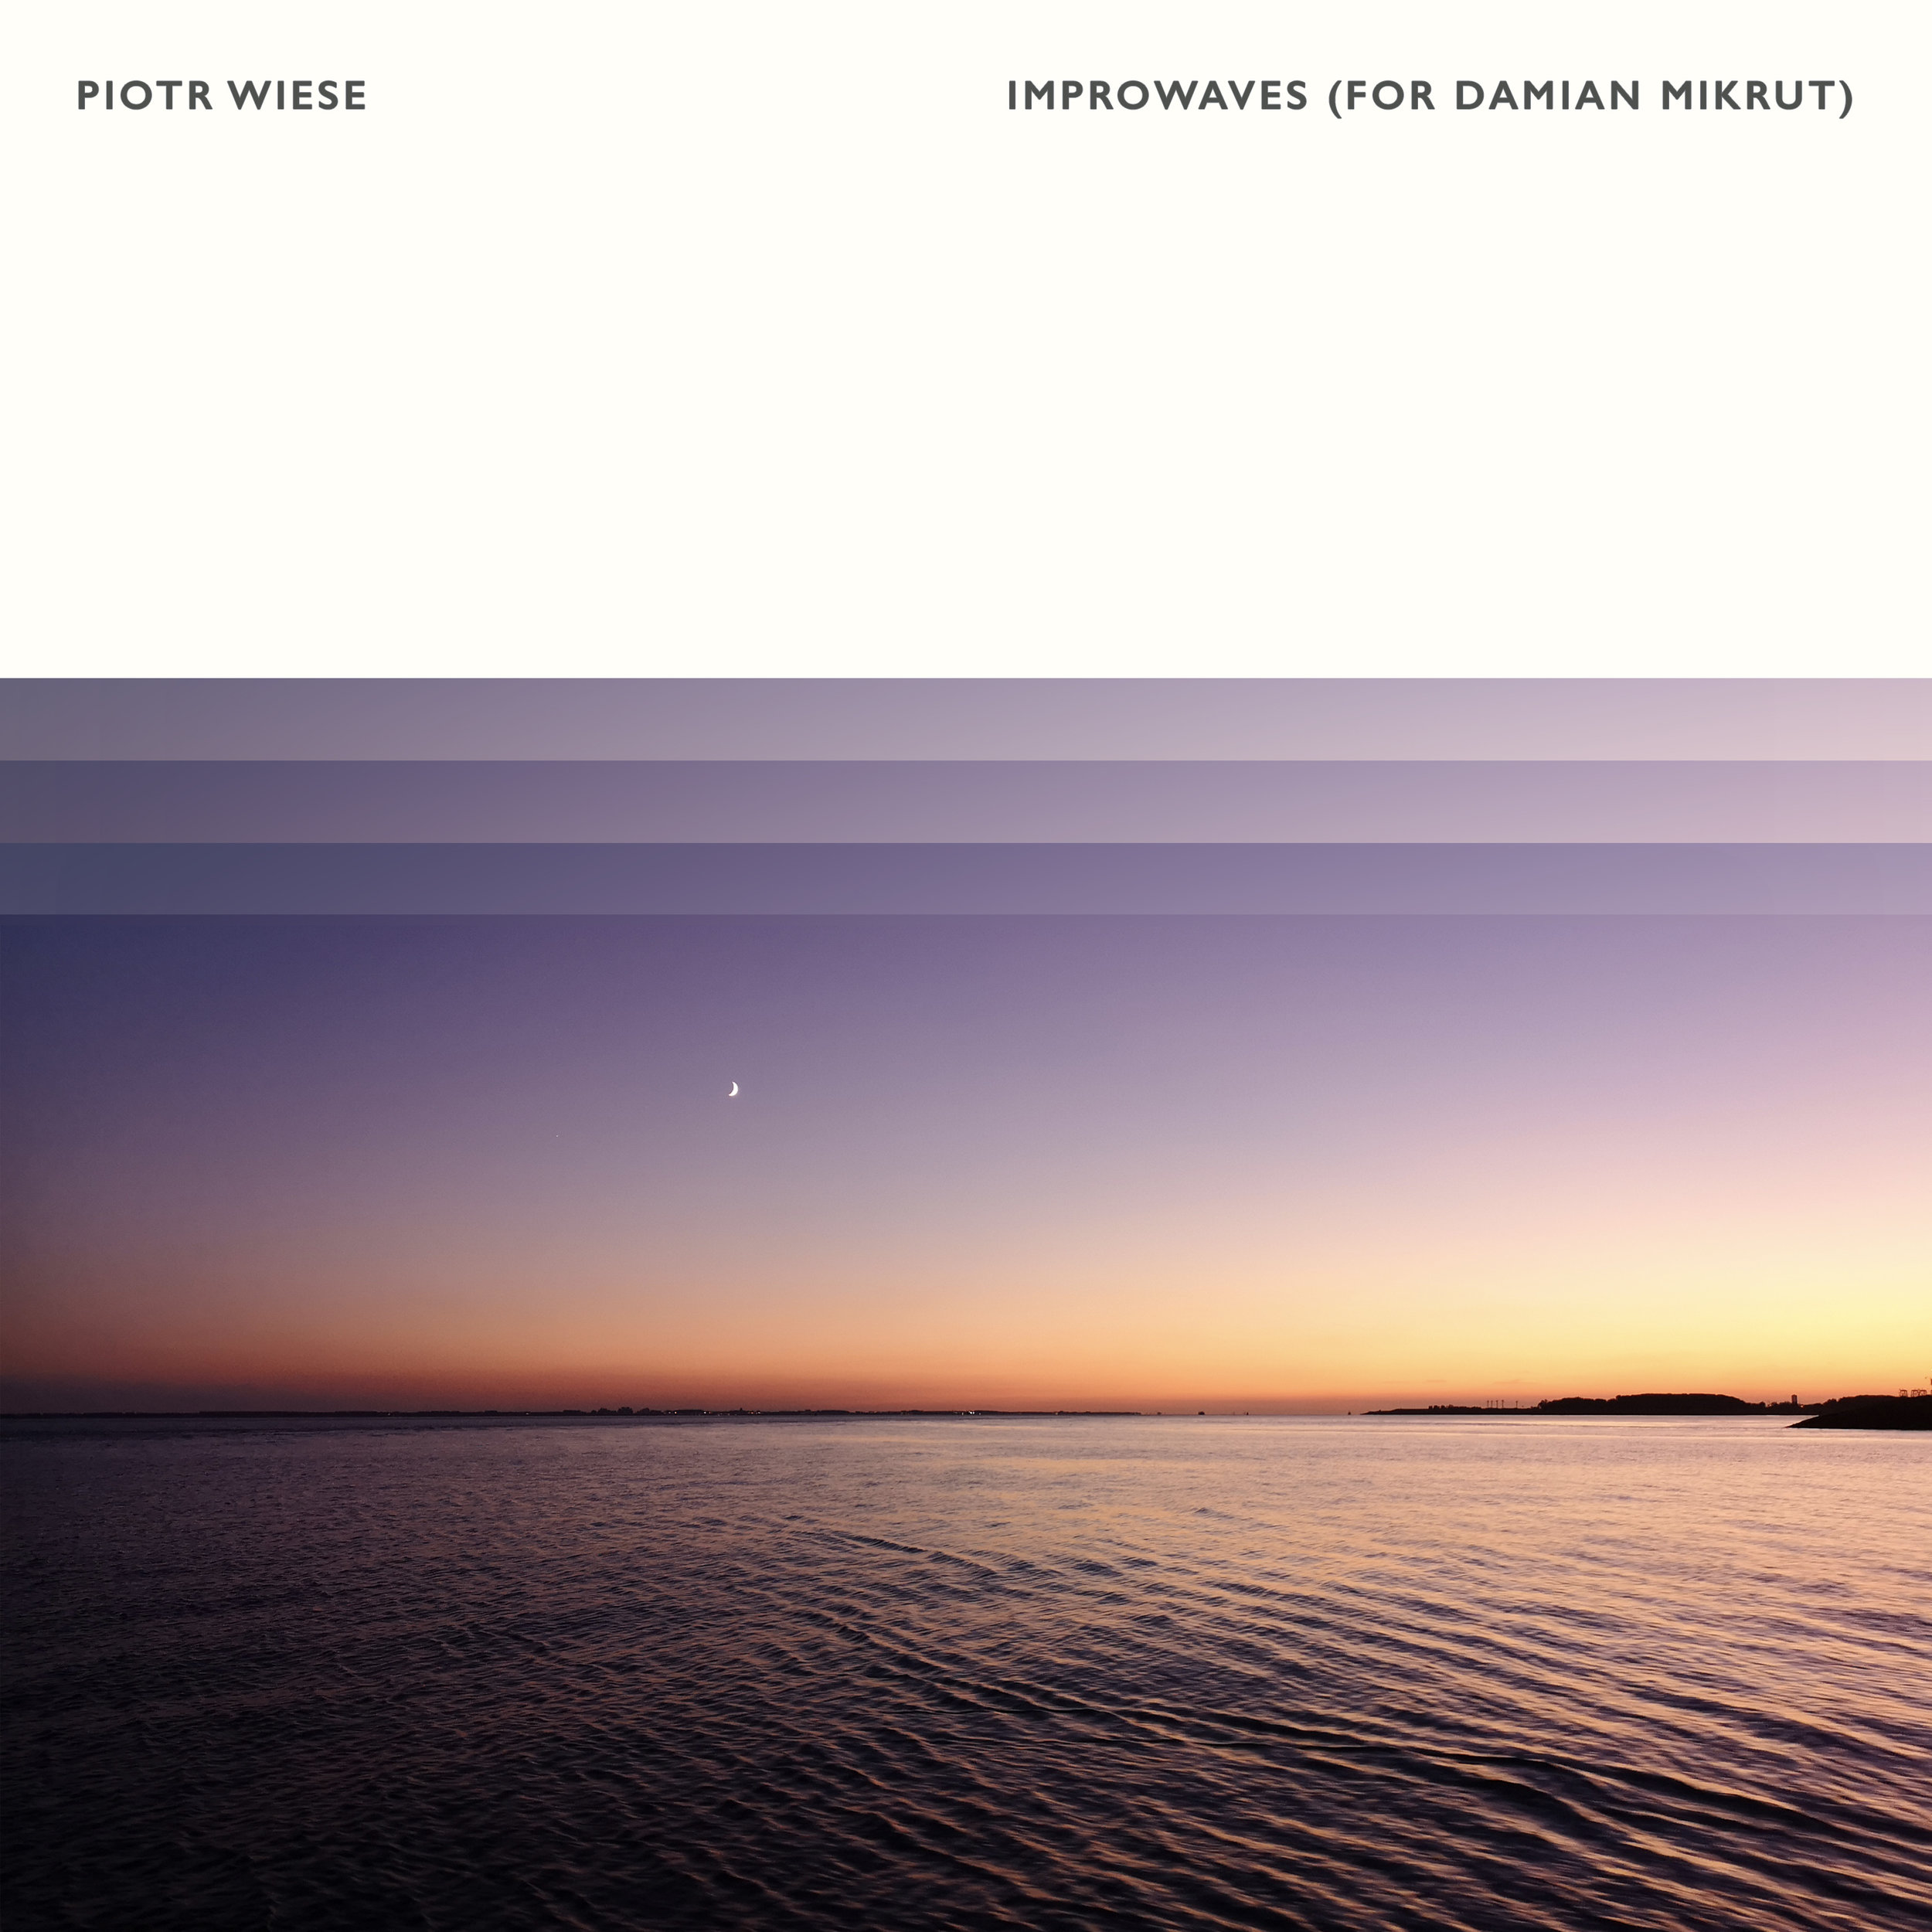 Piotr Wiese - Improwaves (For Damian Mikrut)